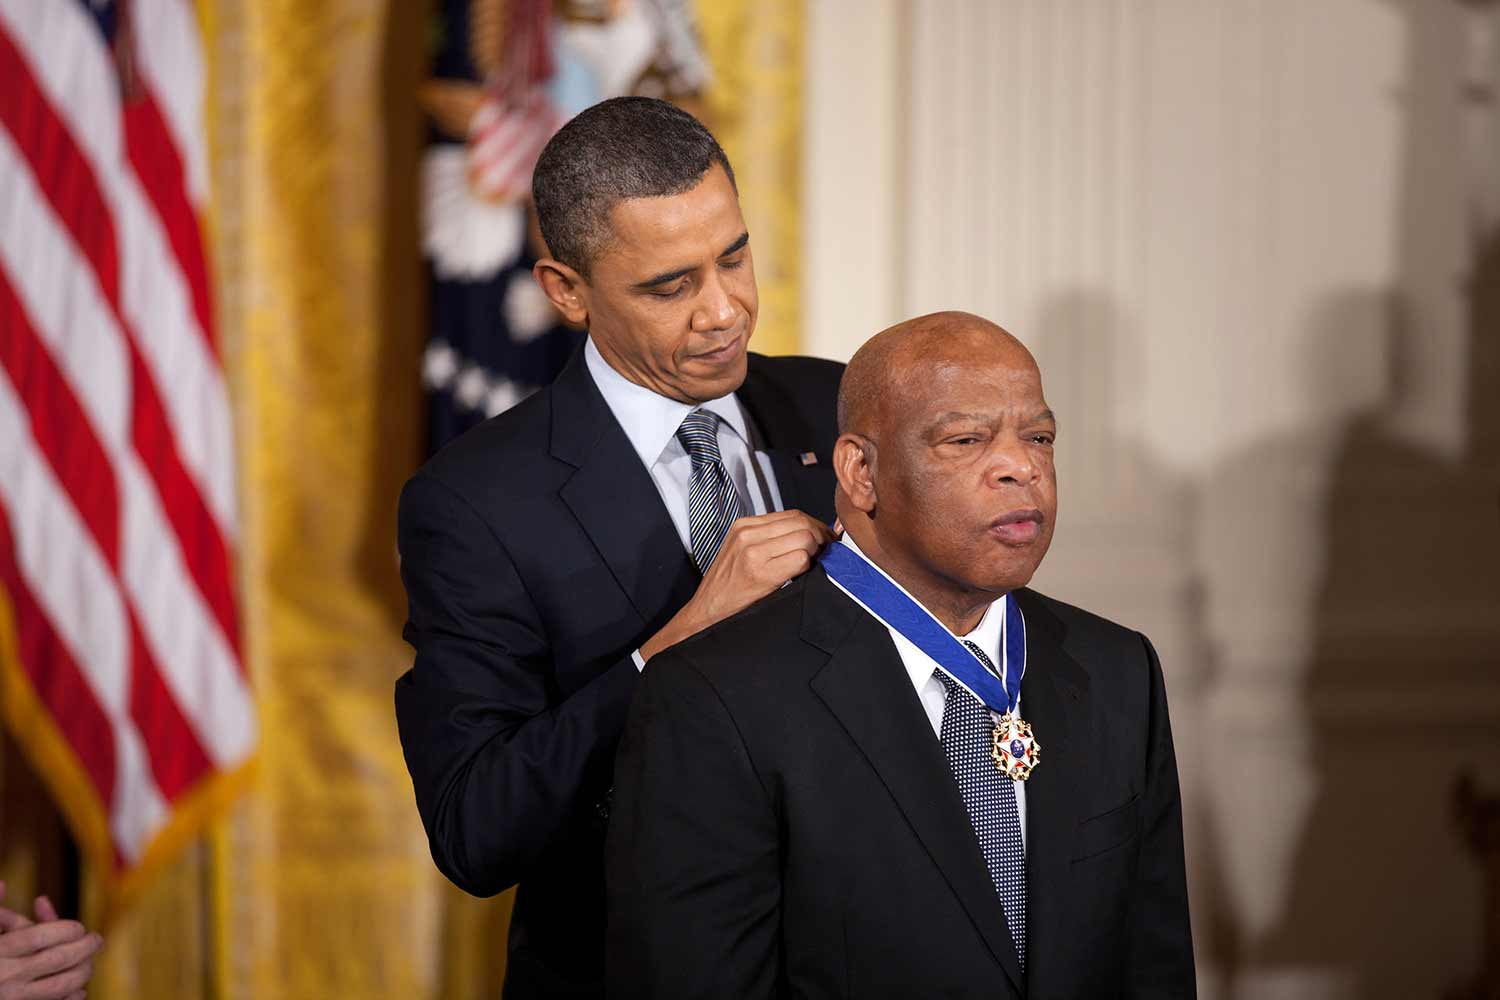 President Obama awards 2010 Presidential Medal of Freedom on Congressman Lewis